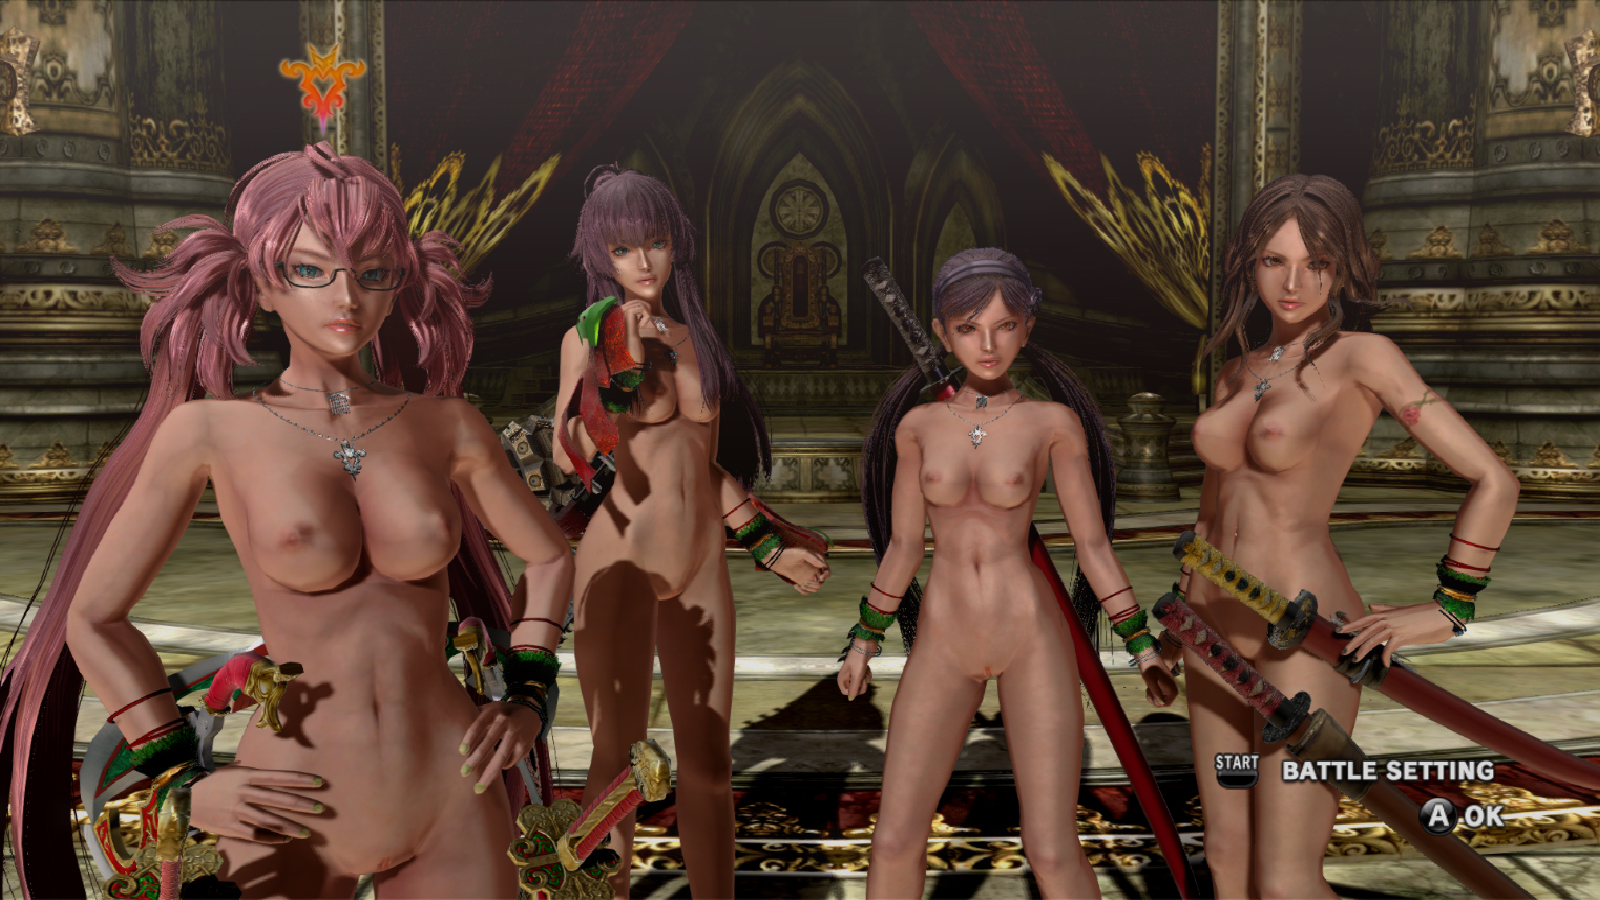 Free nude patches for pc games adult picture